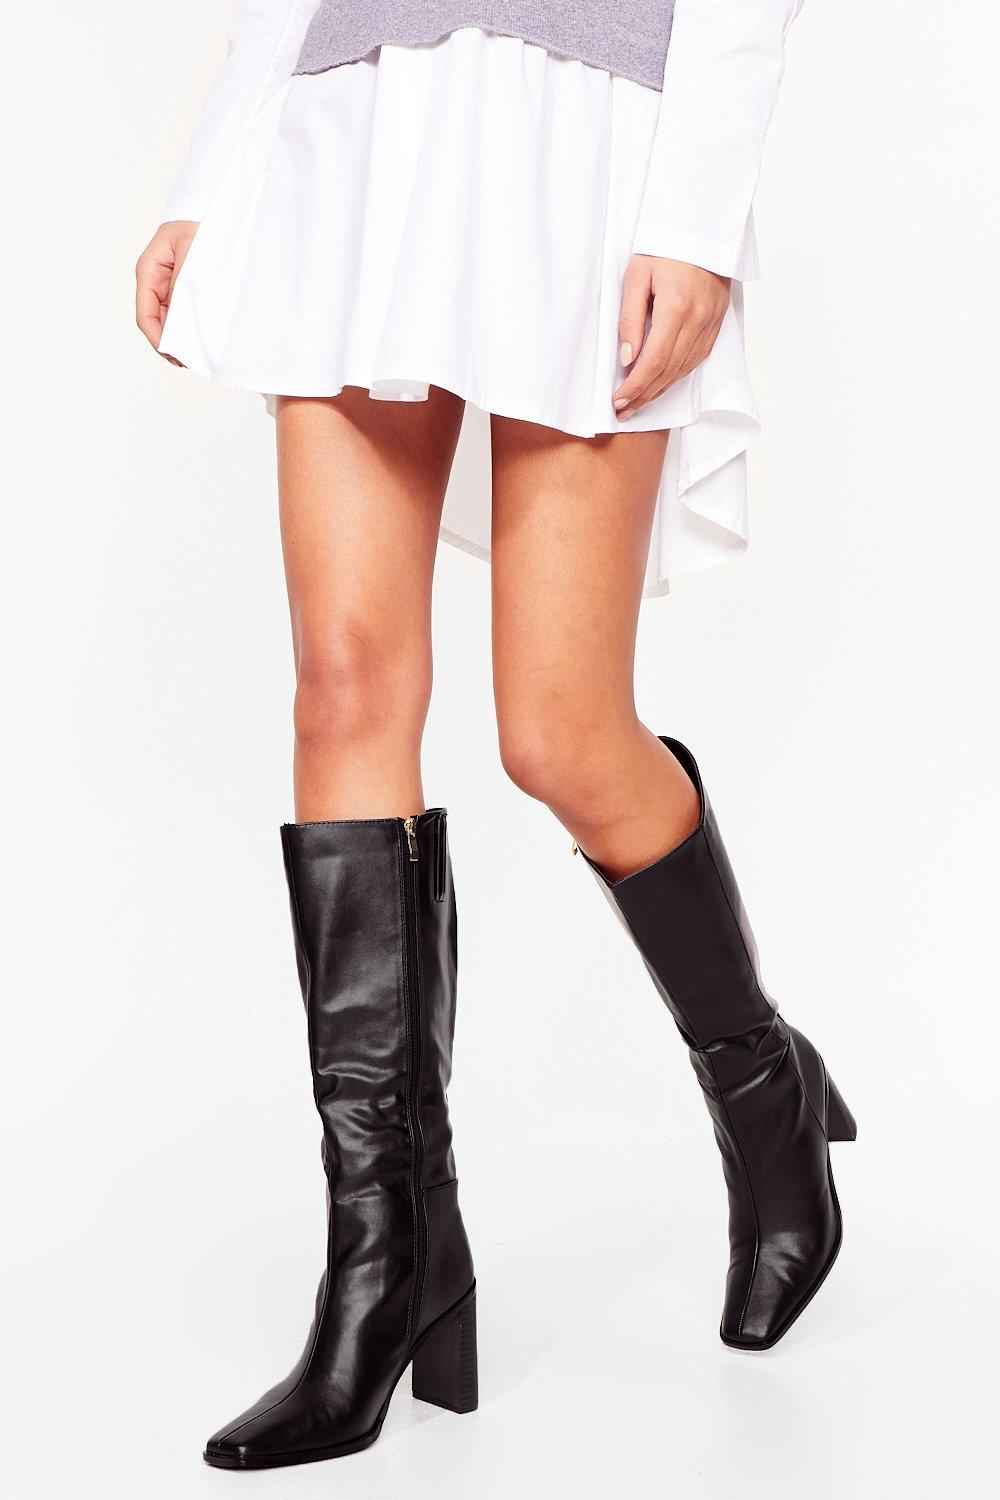 Image of Womens High Hopes Heeled Knee-High Boots - Black